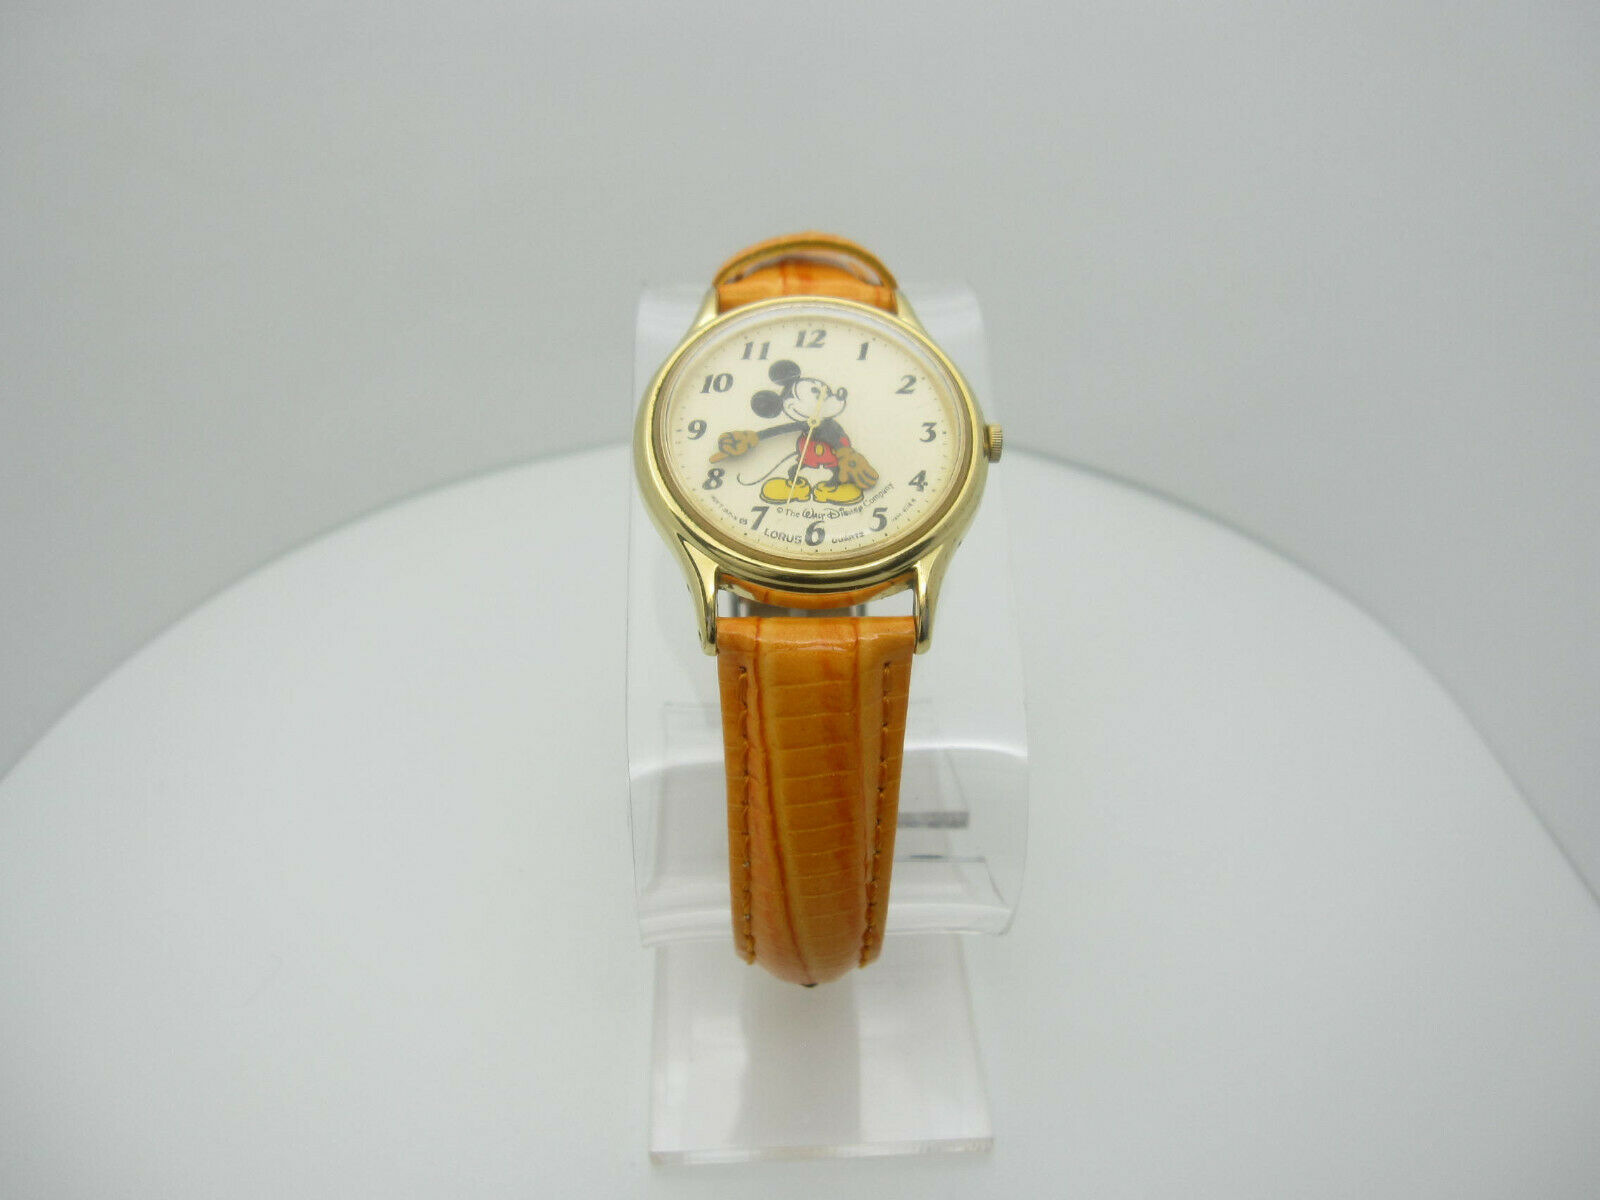 Vintage Mickey Mouse Quartz WR Analog Dial Watch (B956) V515-6118R image 2